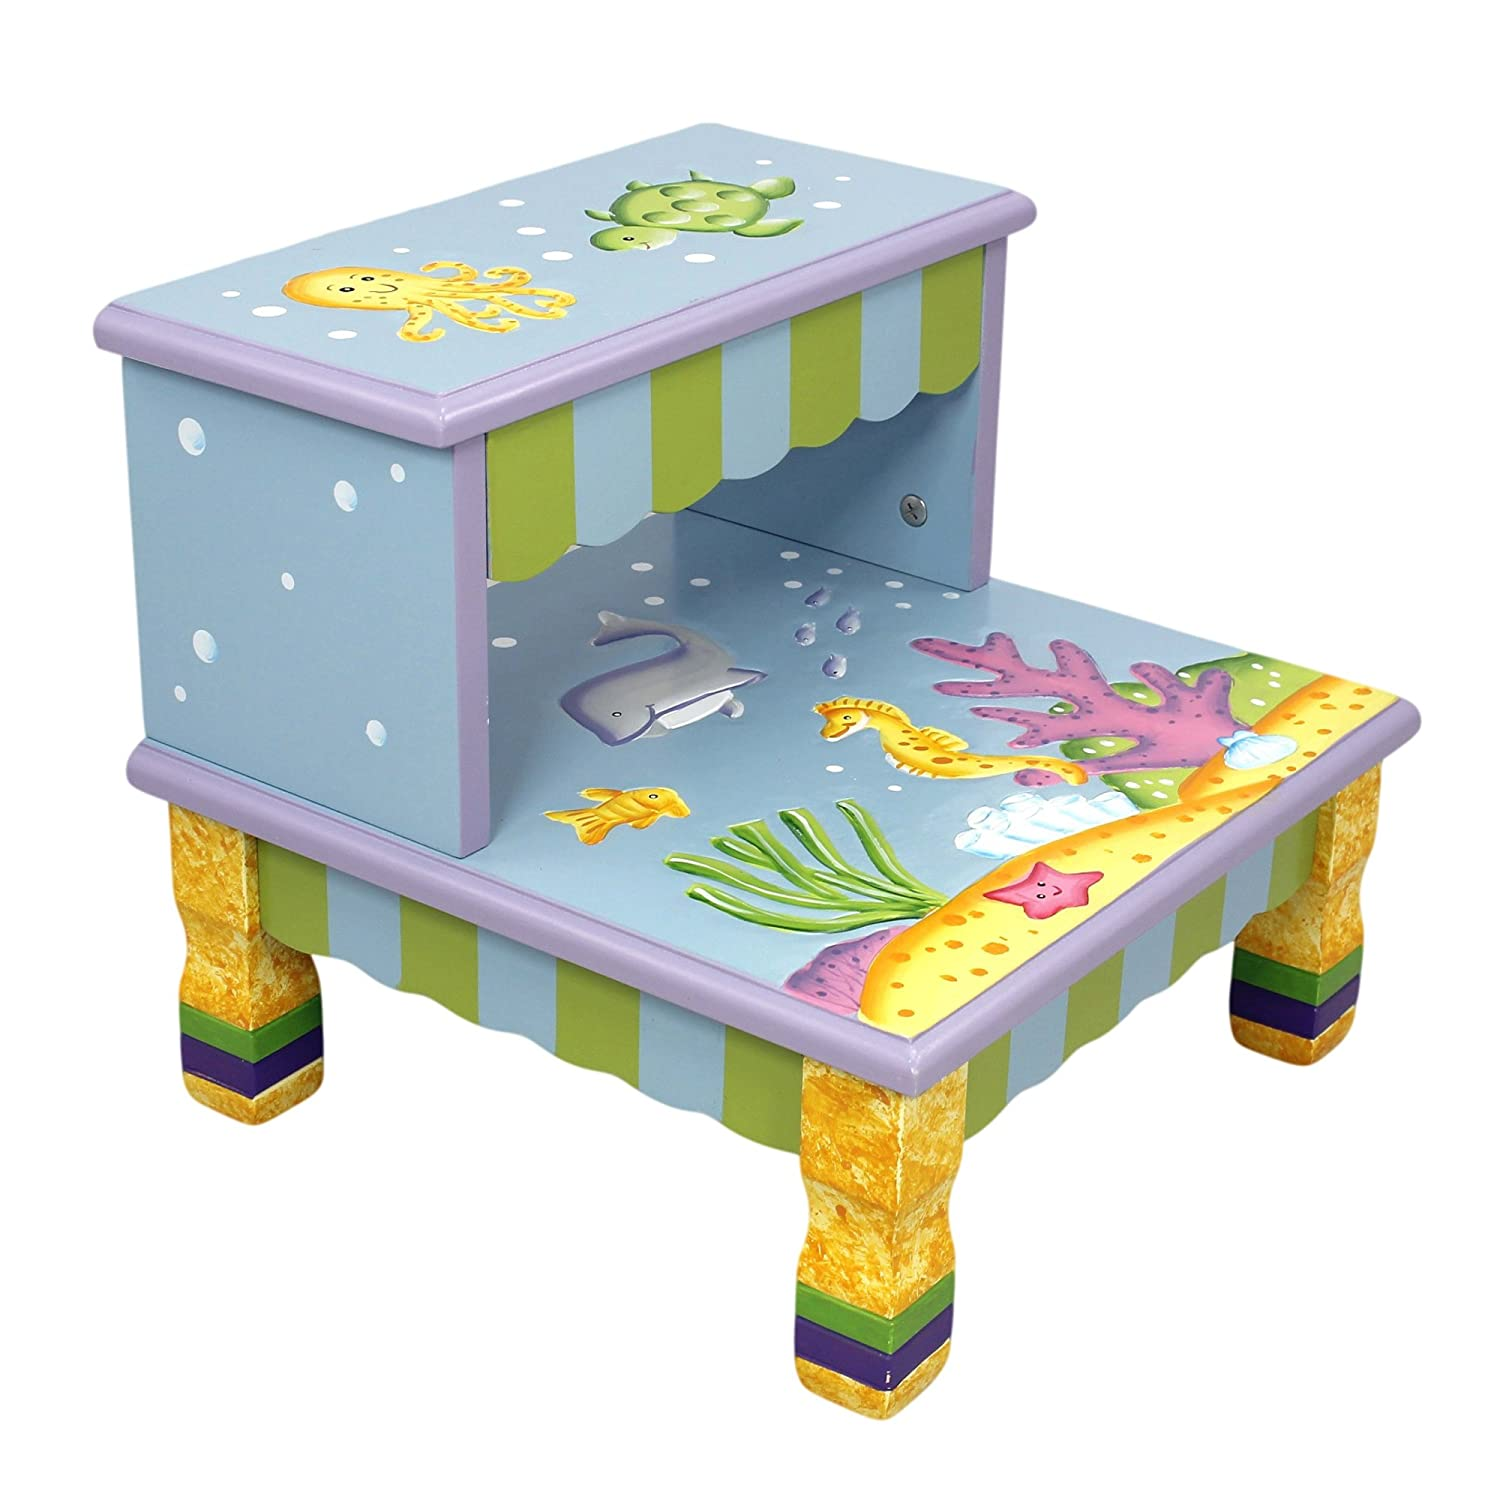 Amazon.com Fantasy Fields - Under The Sea Thematic Kids Wooden Step Stool with Storage | Imagination Inspiring Hand Crafted u0026 Hand Painted Details ...  sc 1 st  Amazon.com & Amazon.com: Fantasy Fields - Under The Sea Thematic Kids Wooden ... islam-shia.org